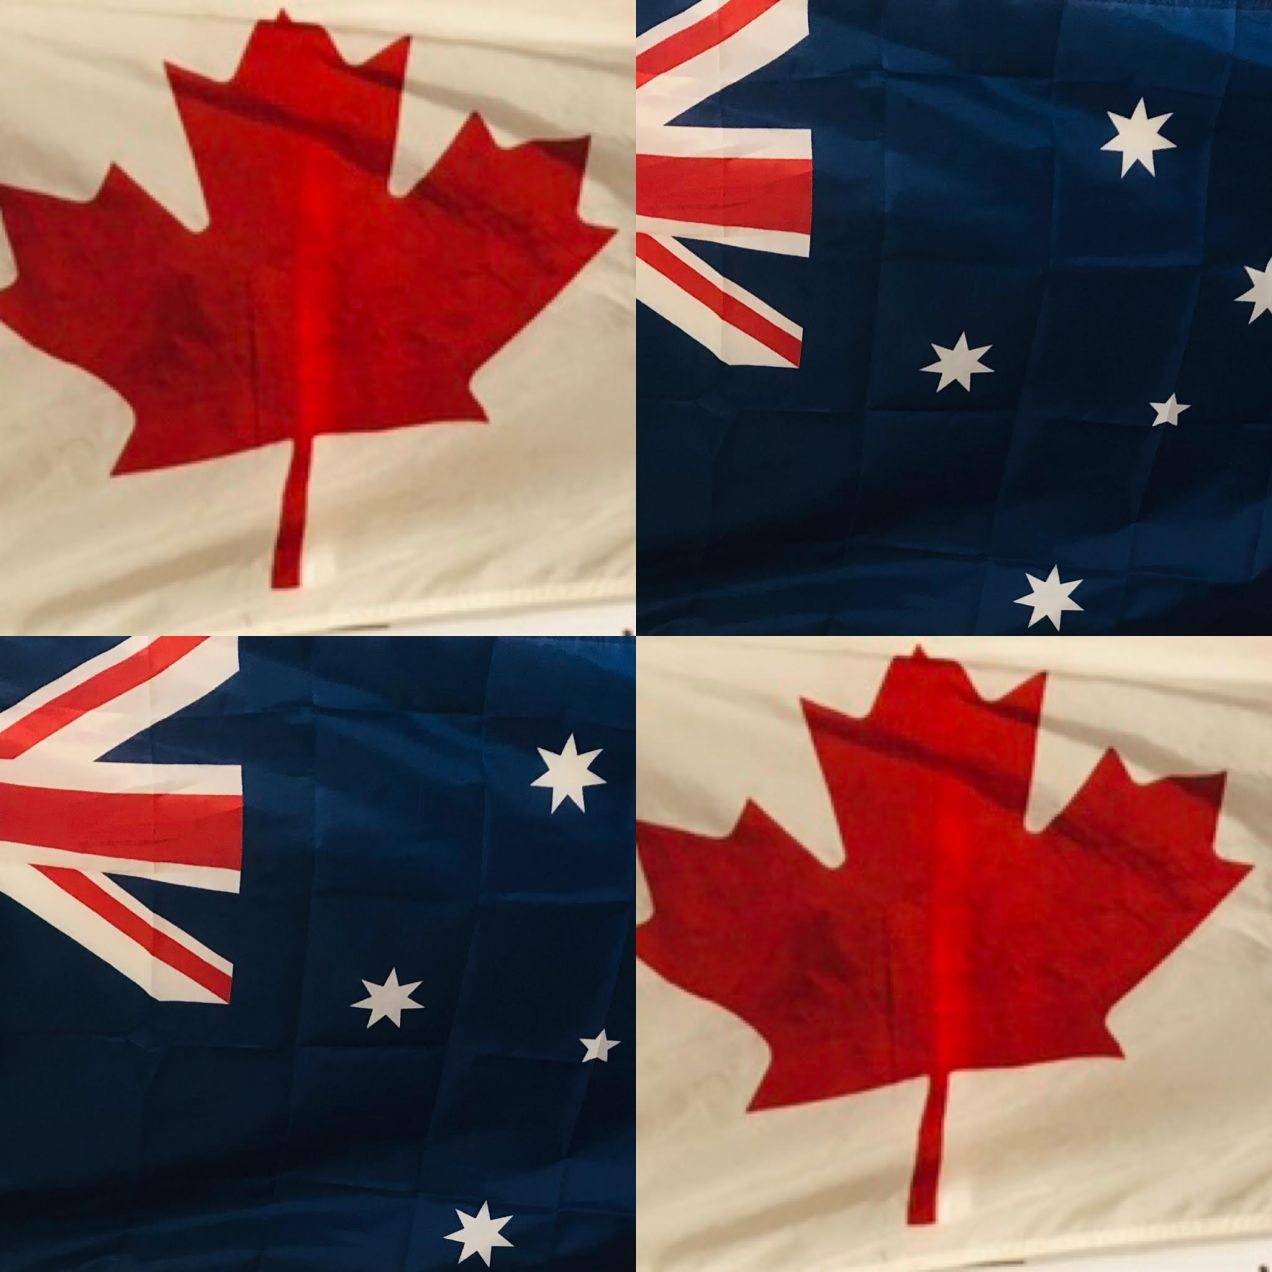 Australia flag Canada flag Differences between Canada and Australlia